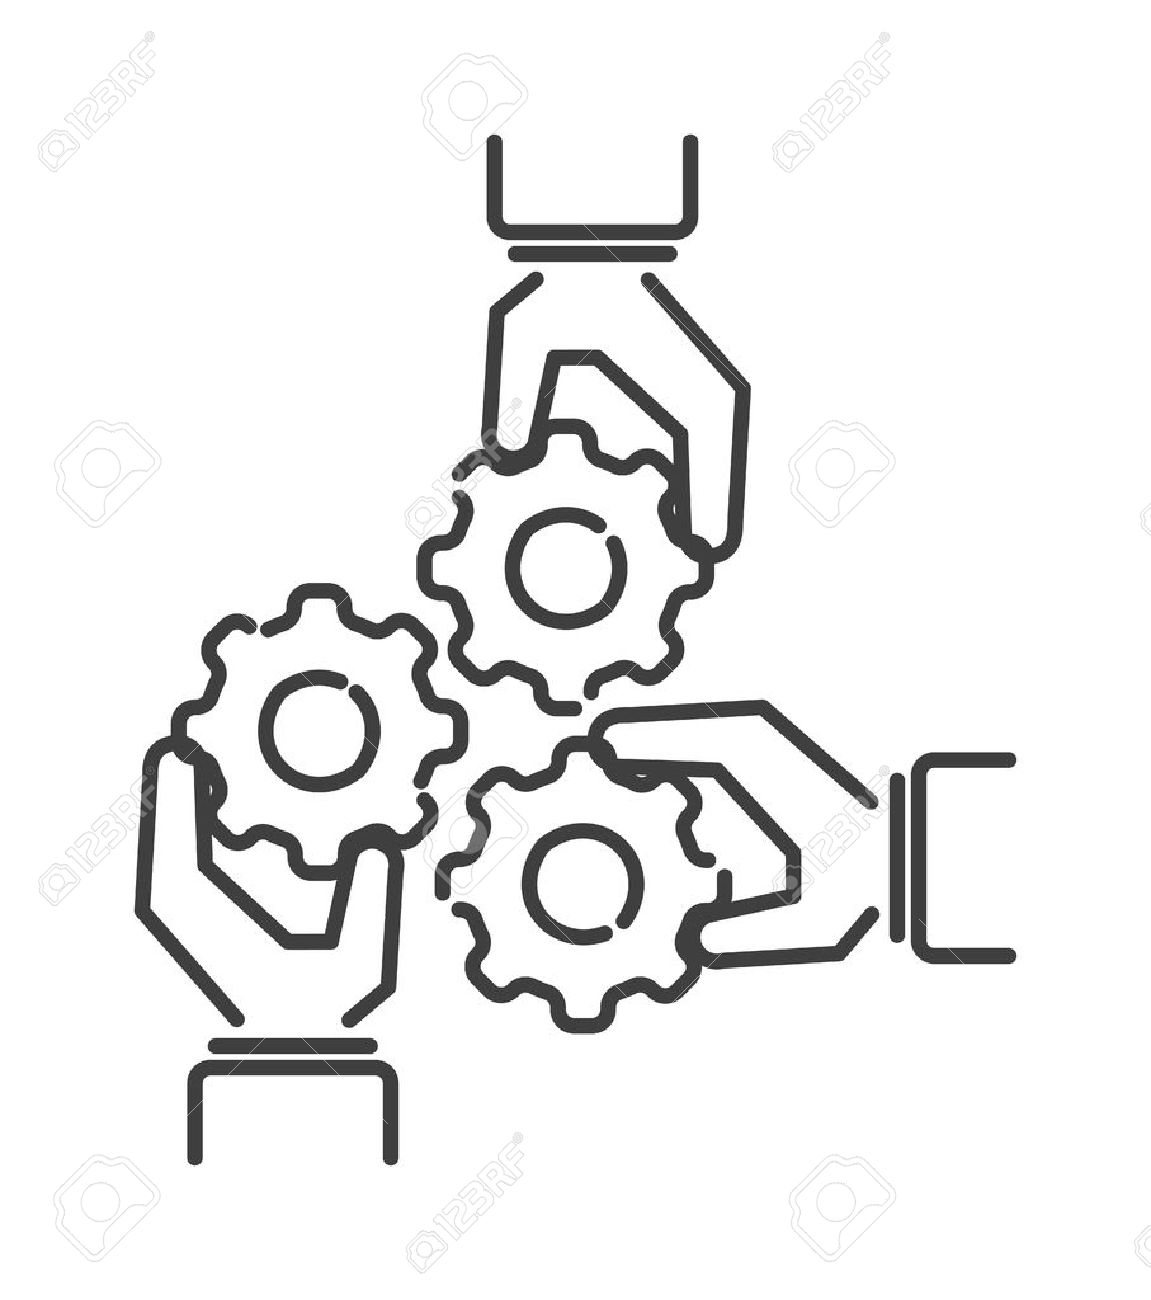 1151x1300 Teamwork Business People Teambuilding Icon Group Communication